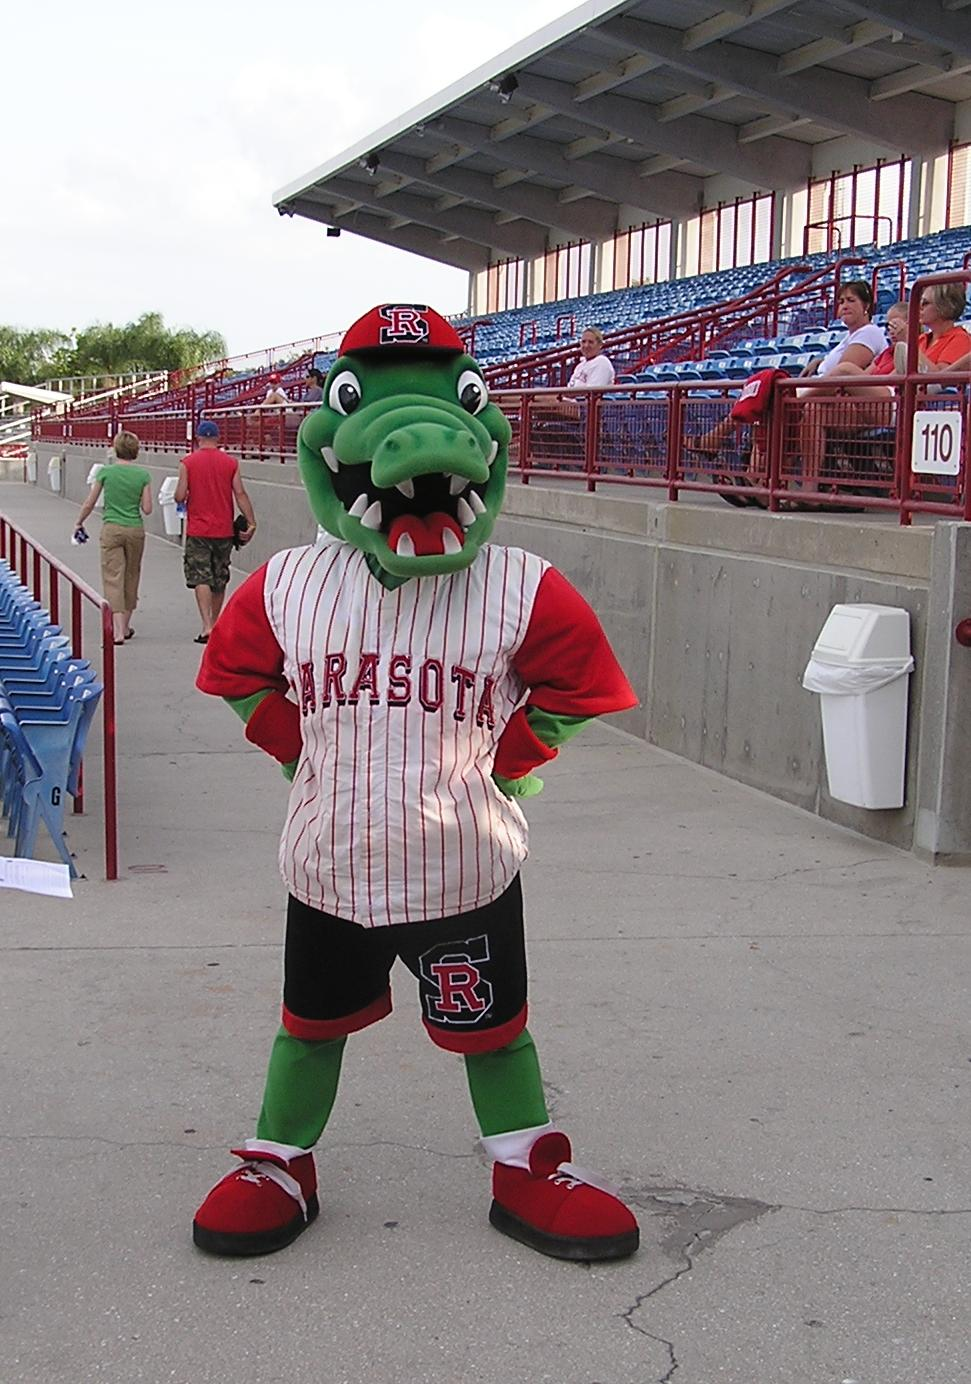 The Rally Gator, Sarasota's Excellent mascot